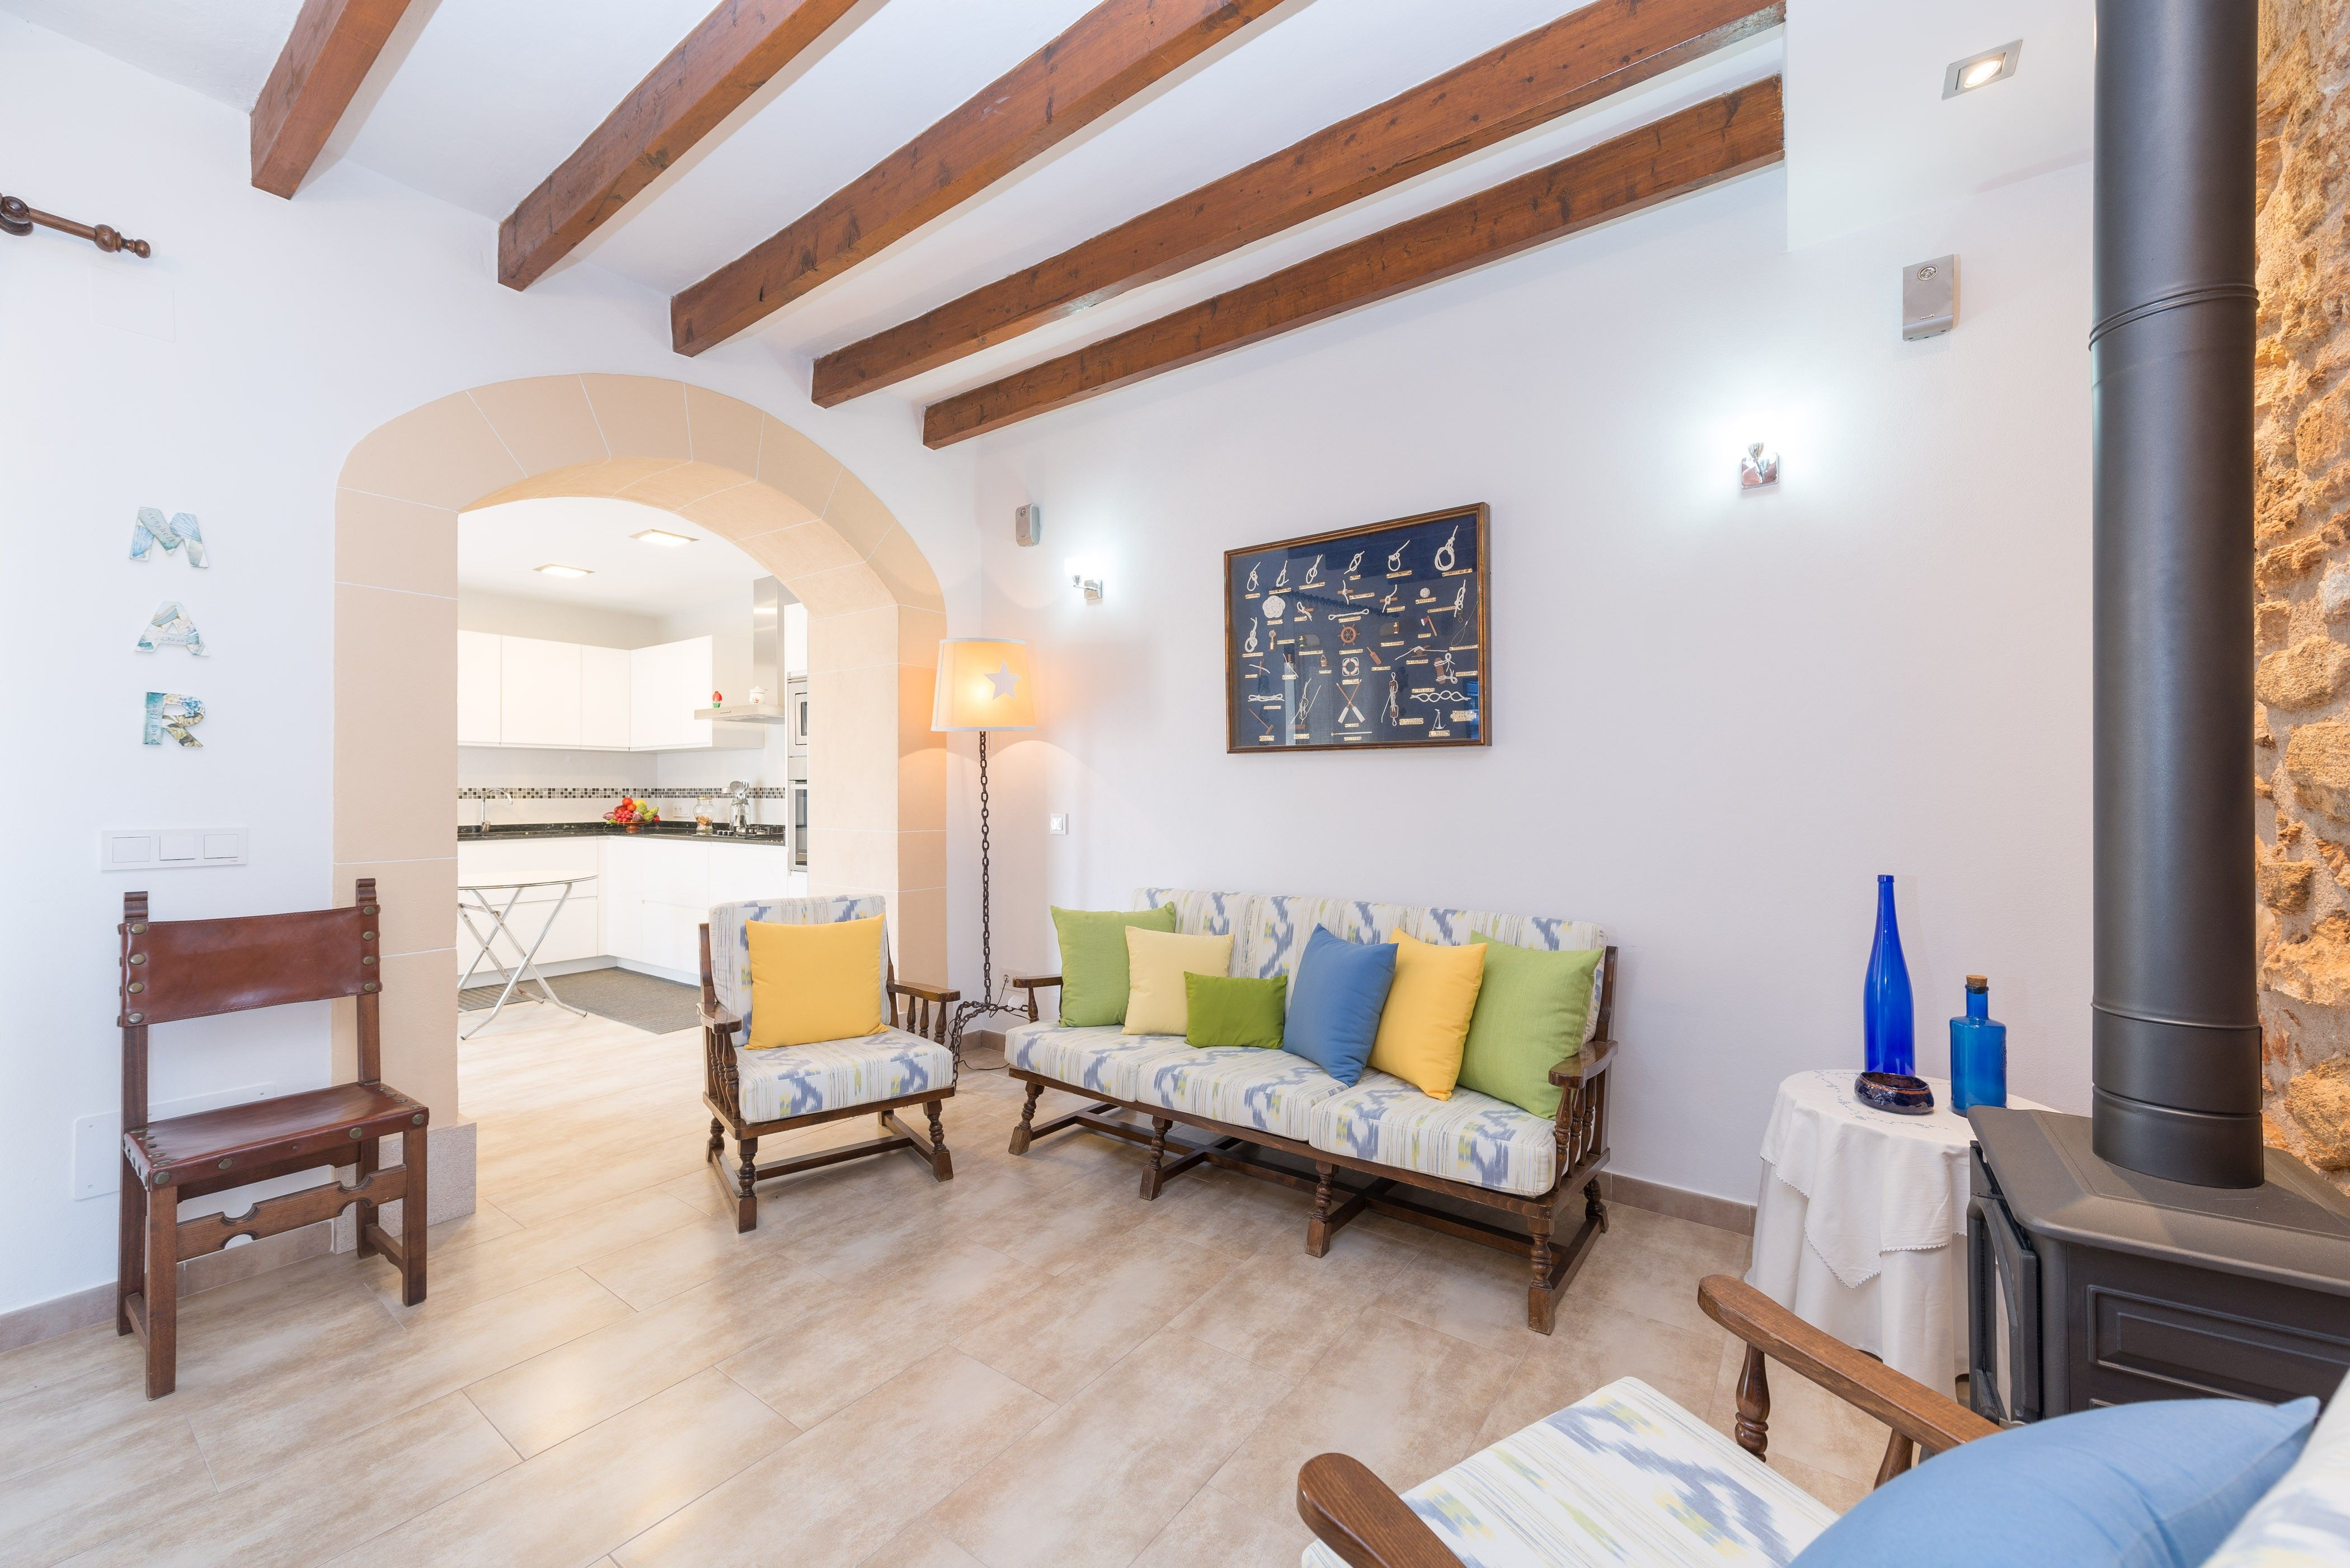 Flat with 3 rooms in Colonia de san pedro